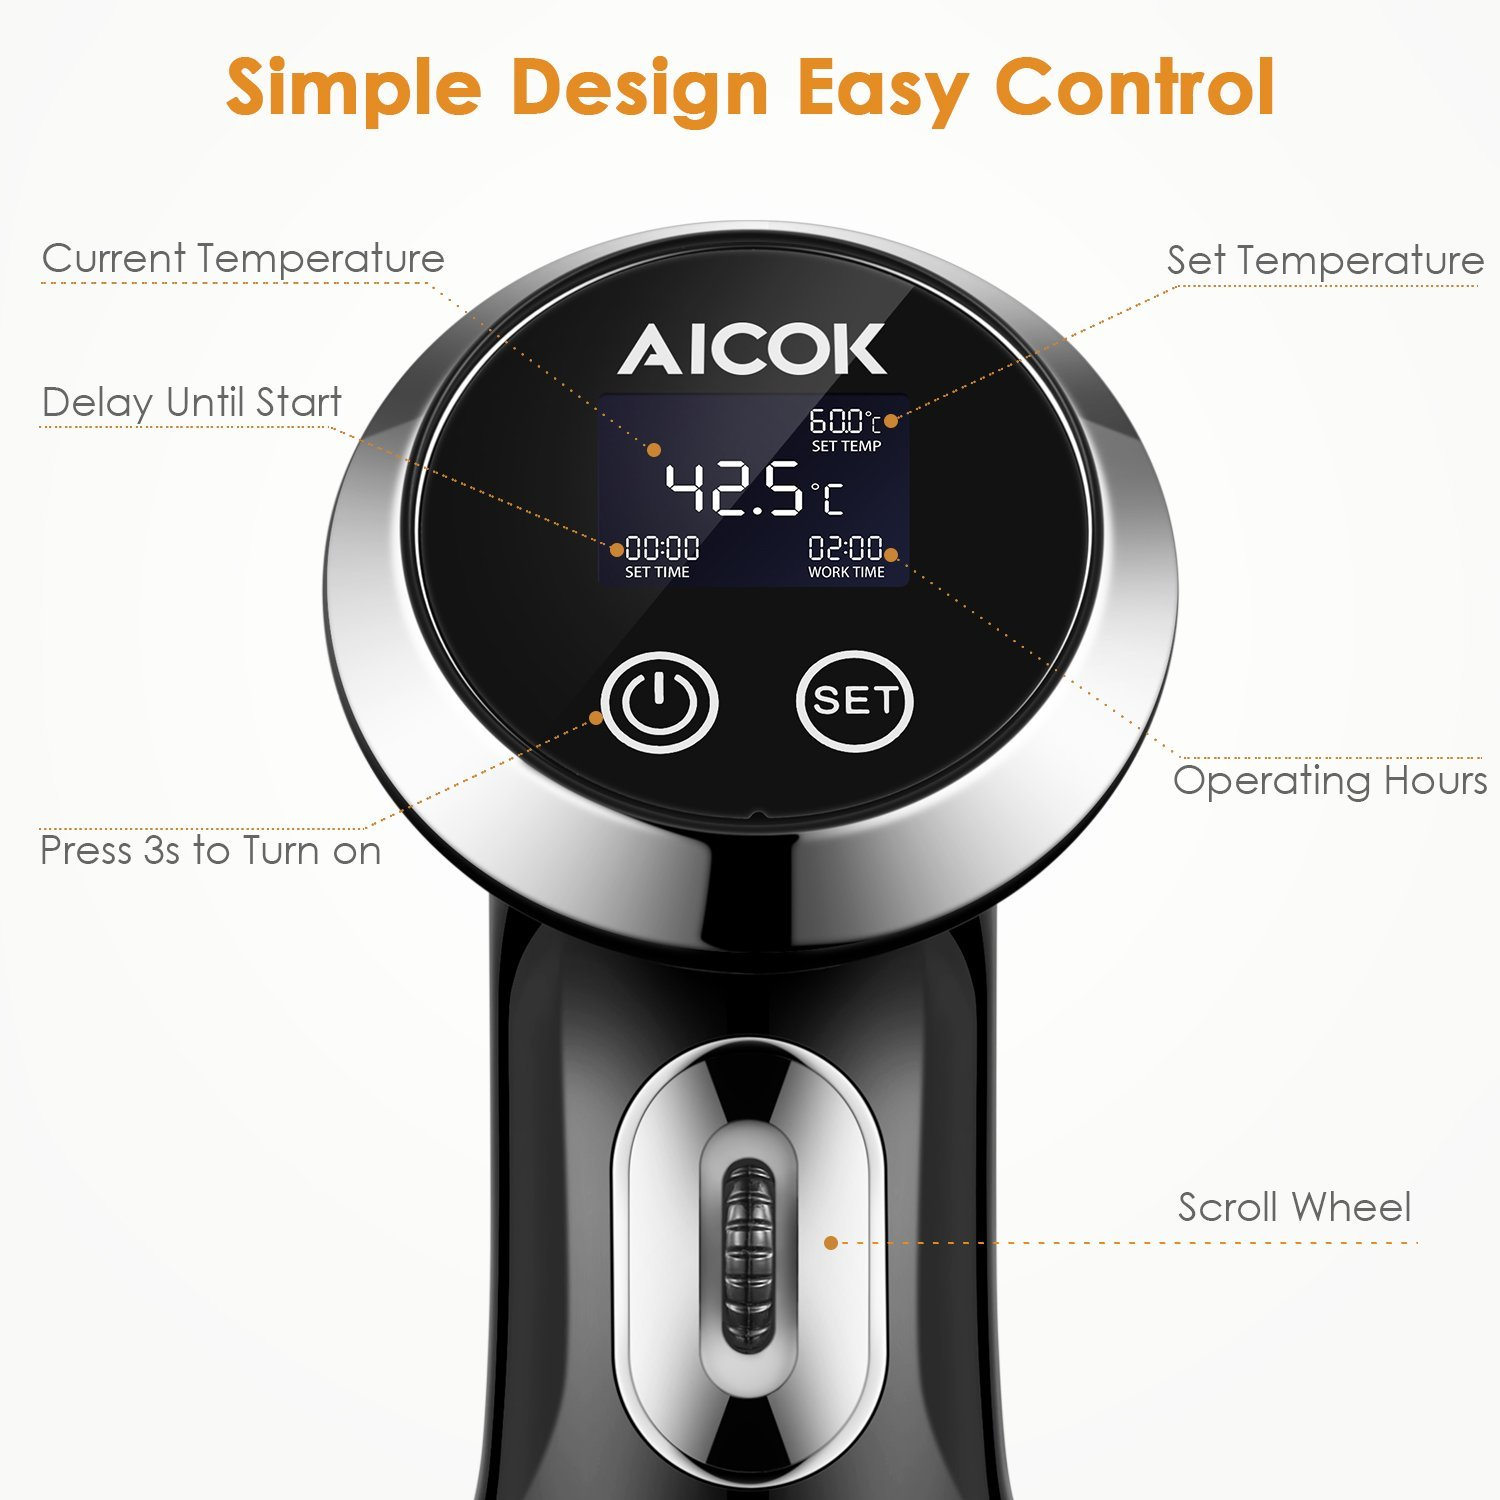 Sous Vide Aicok Amazon